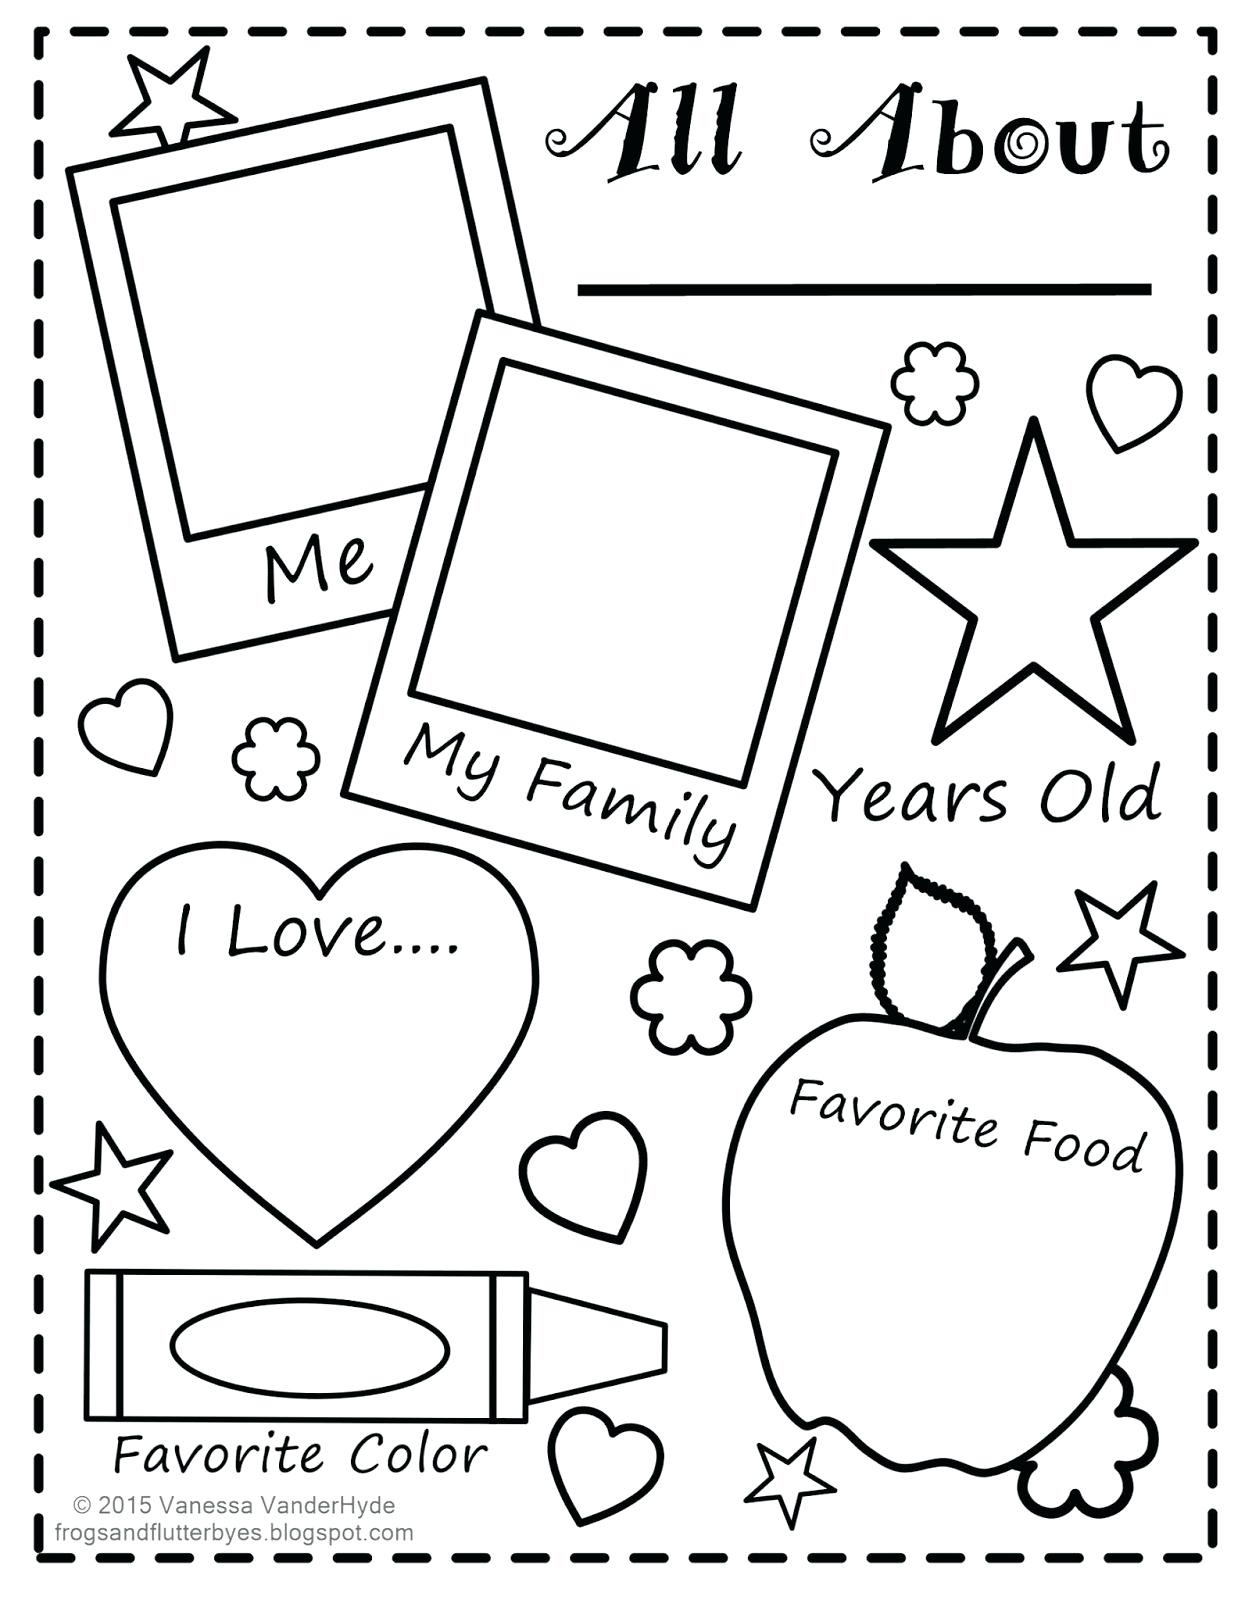 Free Printable All About Me Worksheet Collection Of Free Printable - Free Printable All About Me Worksheet